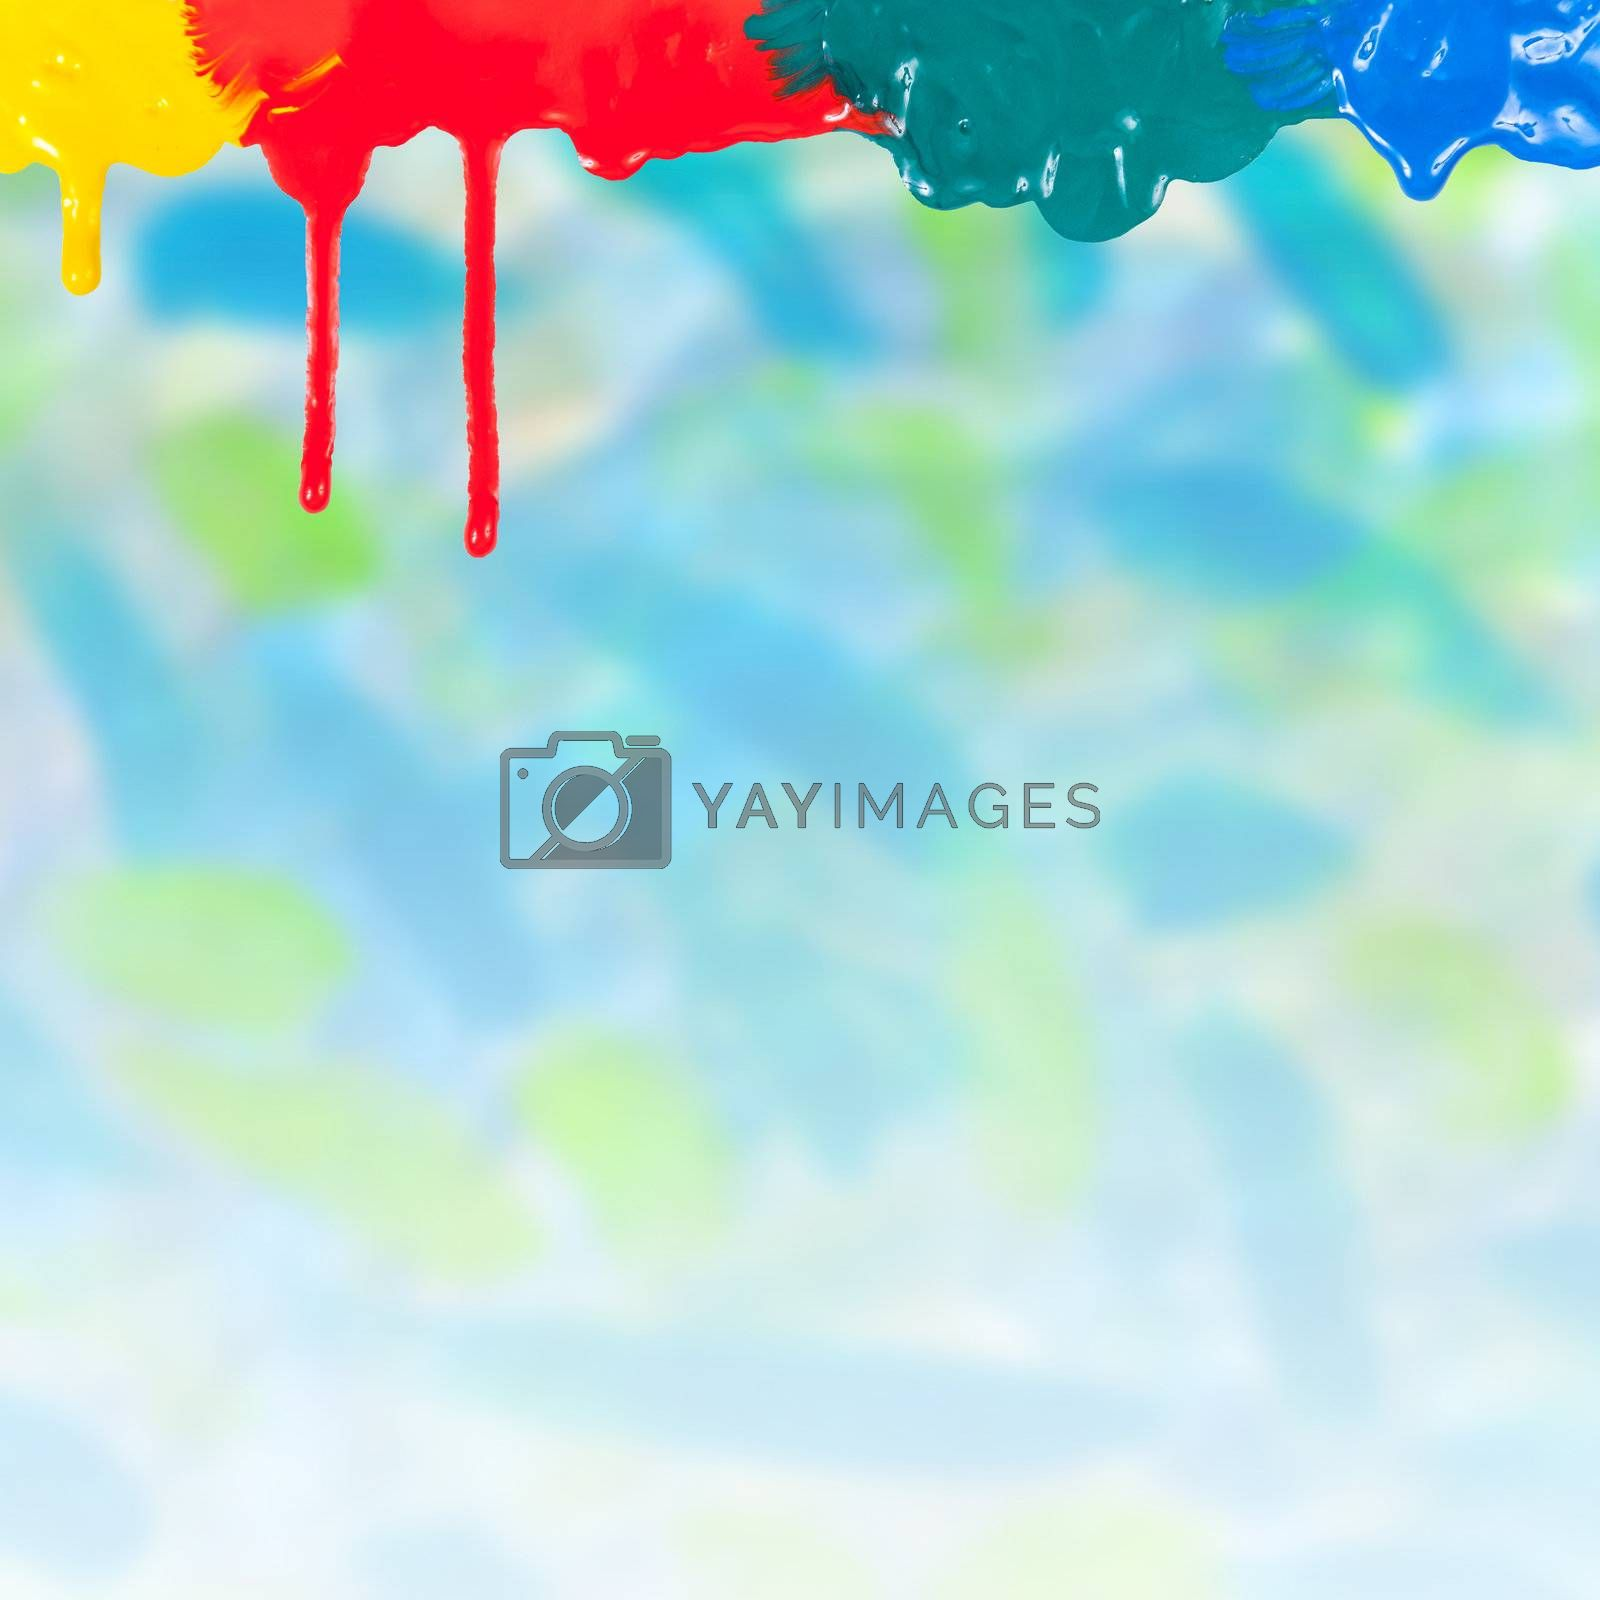 Abstract paints dripping on colorful background